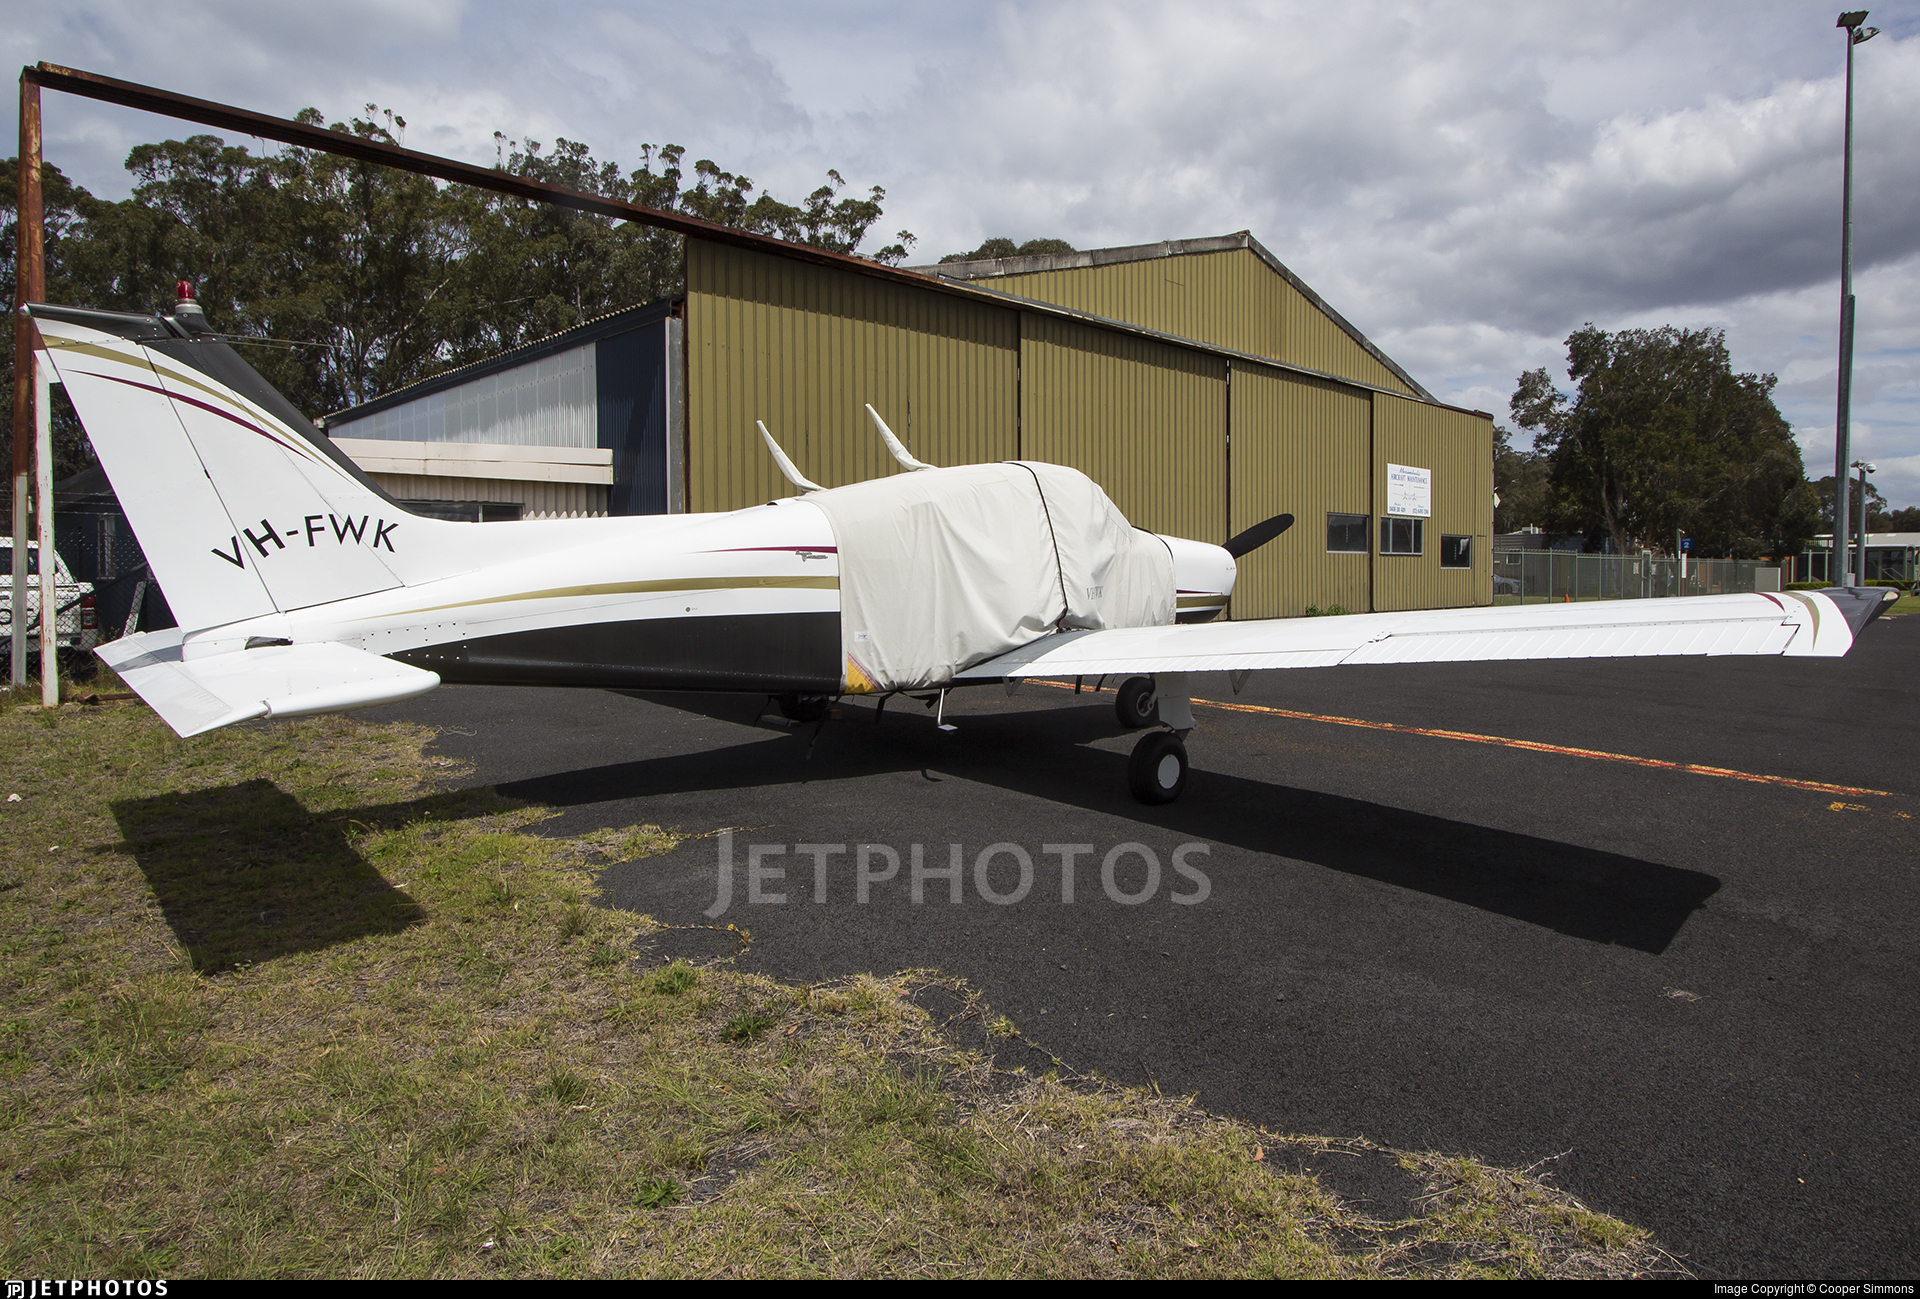 VH-FWK - Beechcraft A23-24 Musketeer Super III - Private